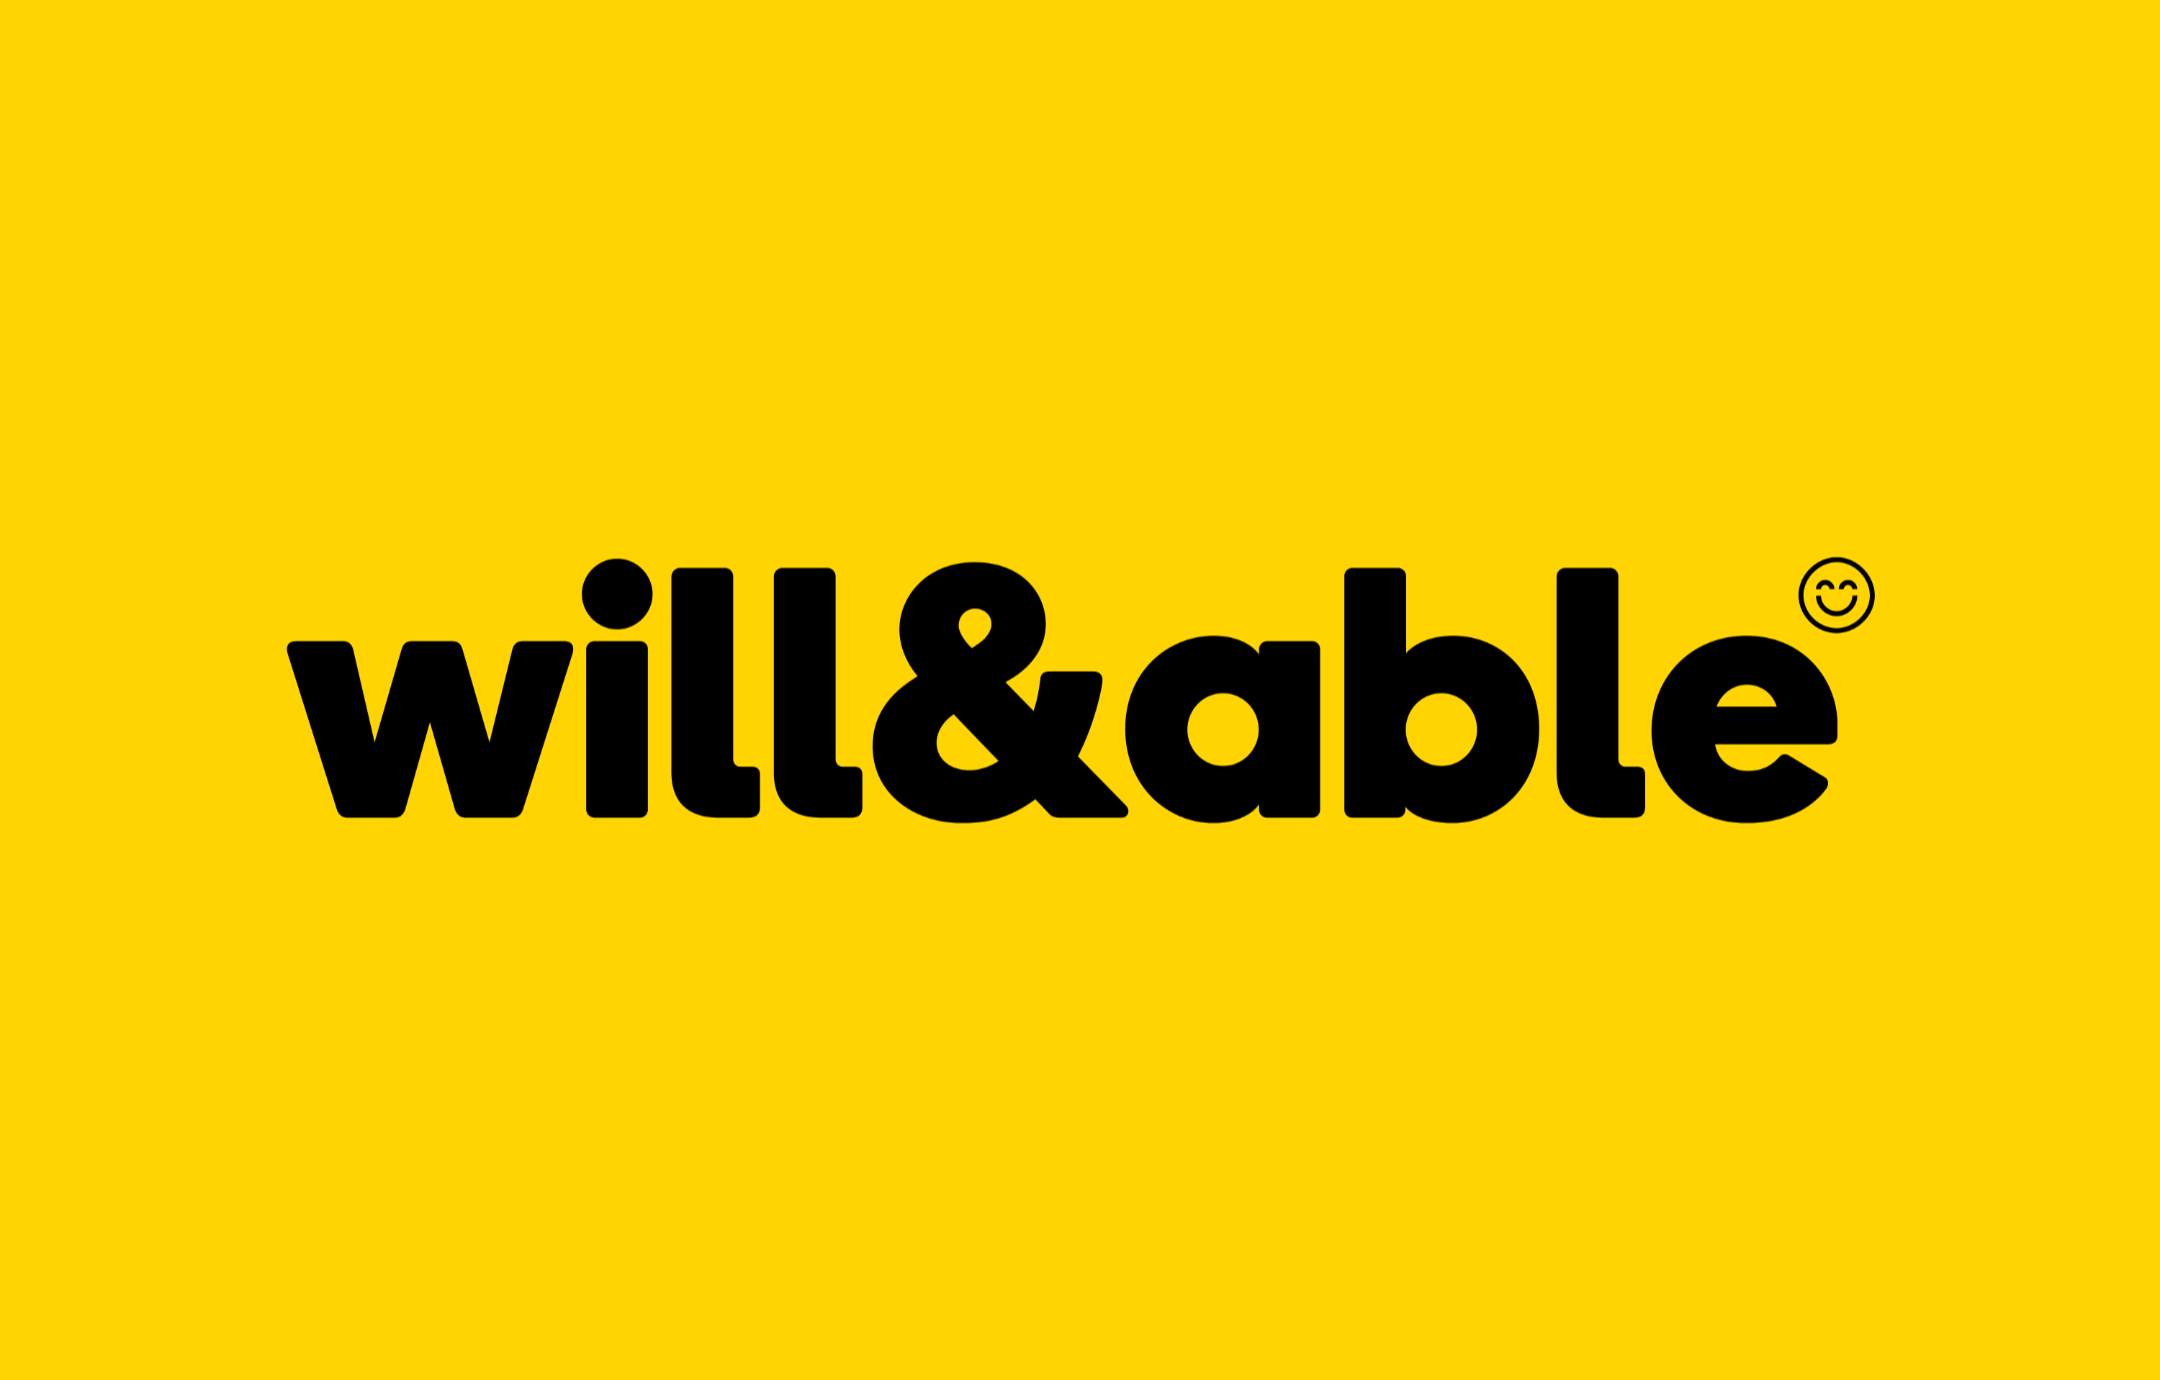 The Will & Able logo, featuring lowercase sans-serif type, in black, on a yellow background